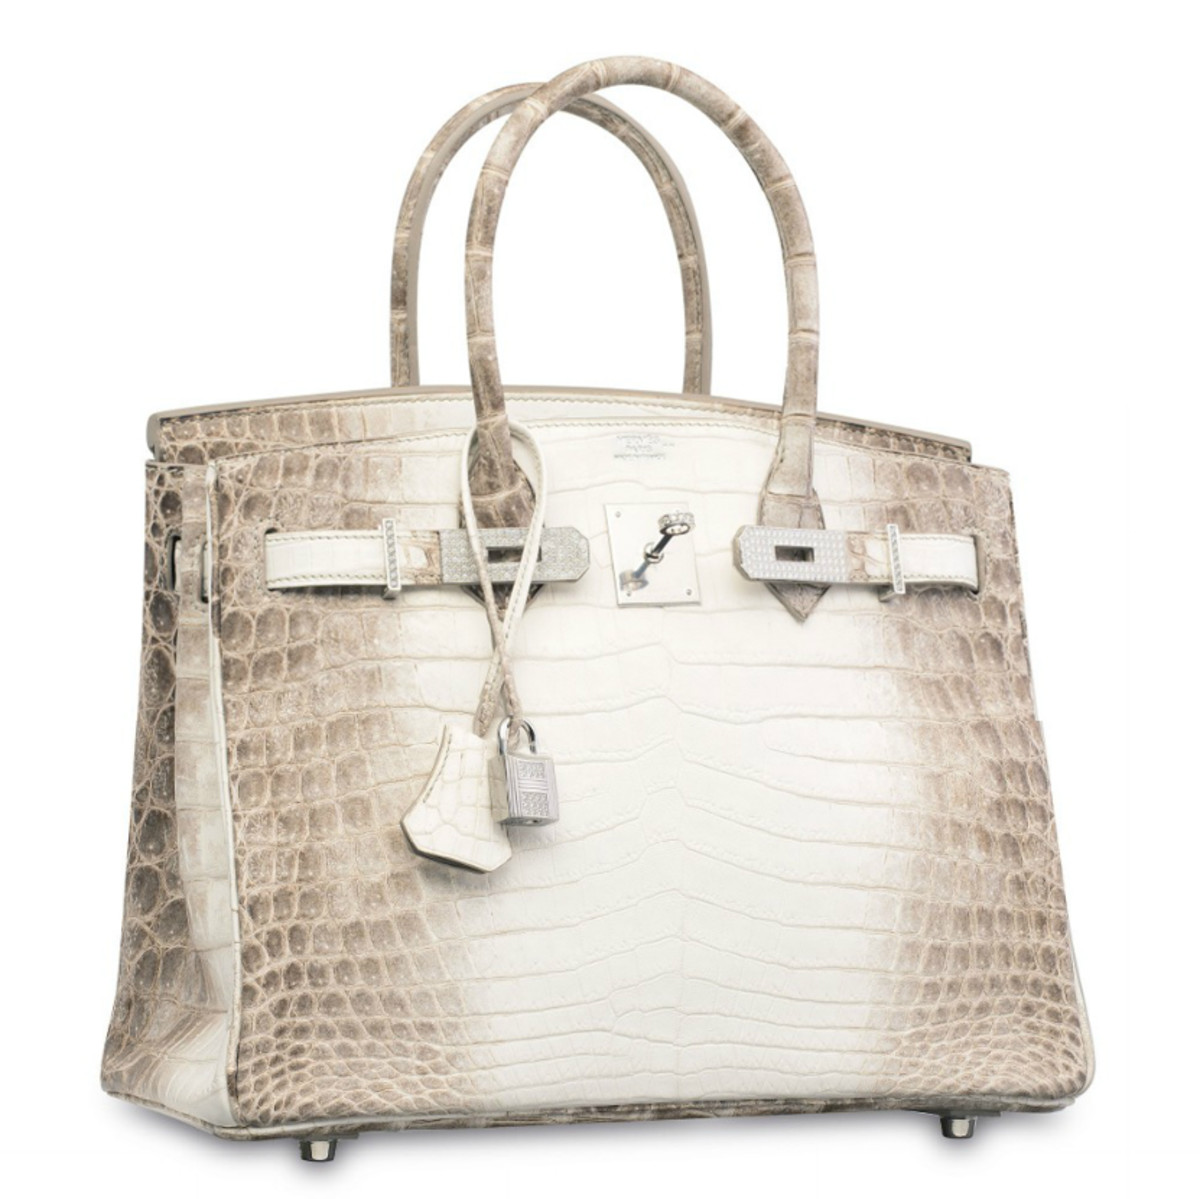 7717ac71724 Must Read: Birkin Bag Sets Absurd Record Price at Auction, Thieves ...